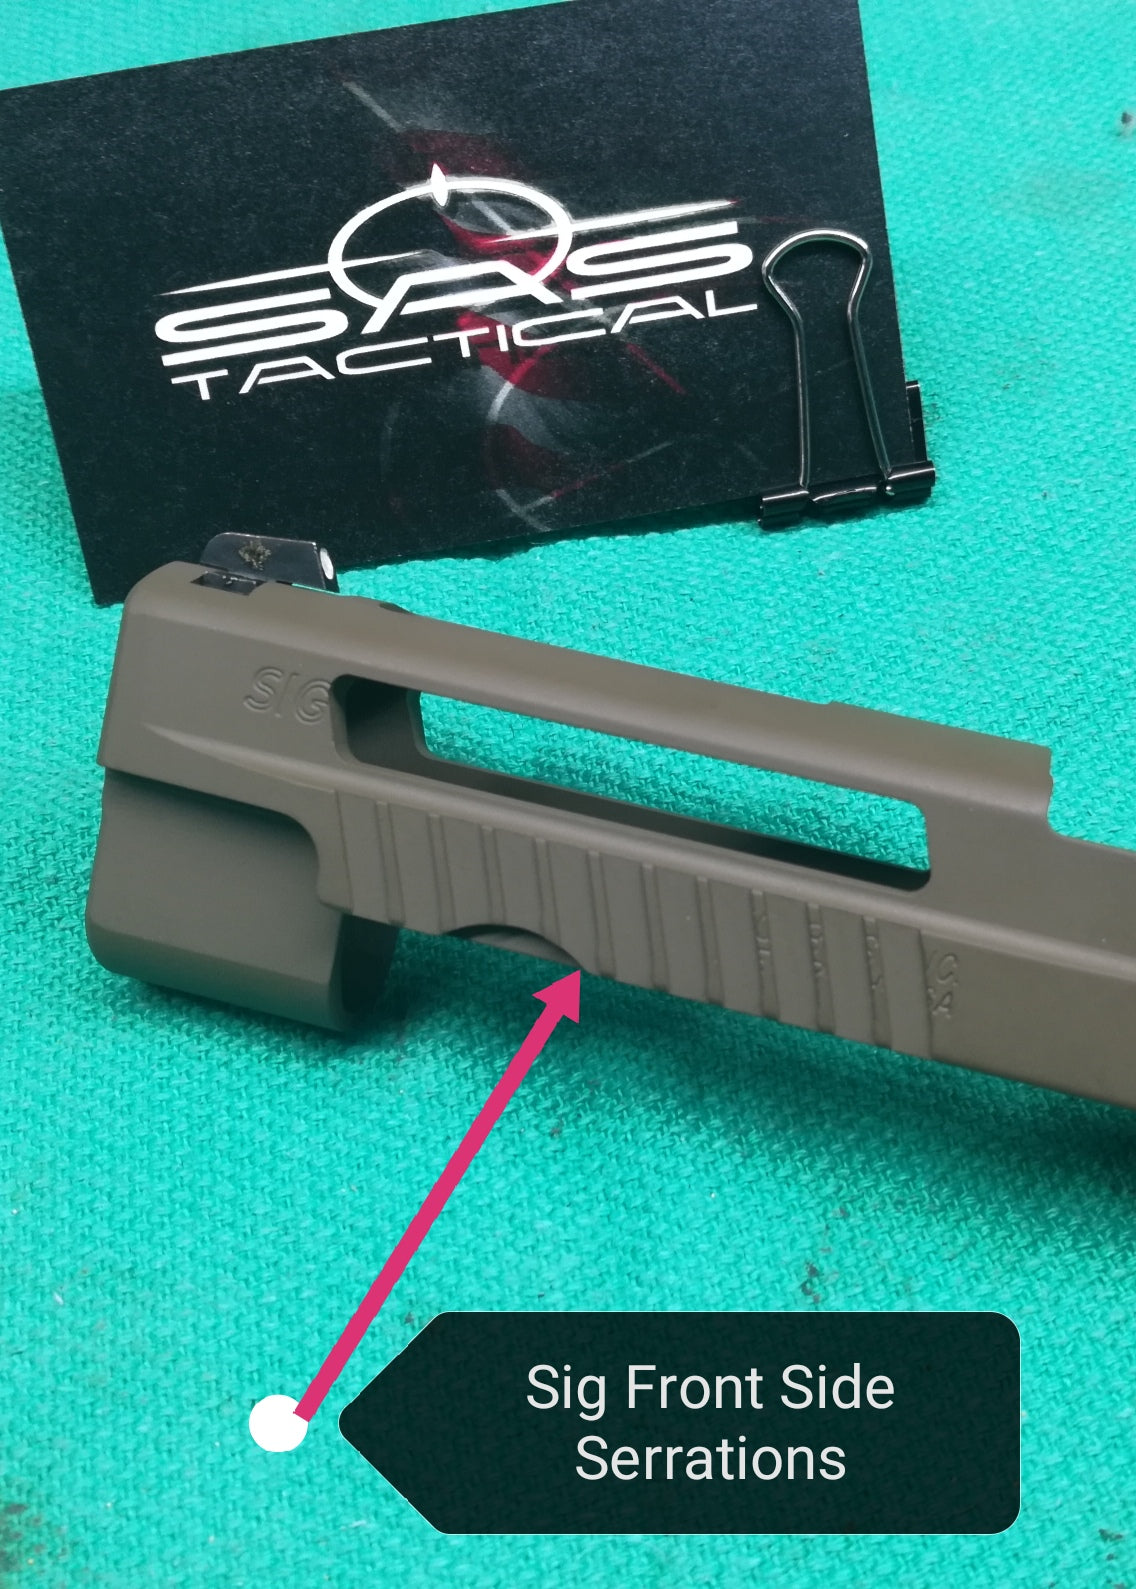 Sig Sauer - Slide Milling Service - Front Side Serrations